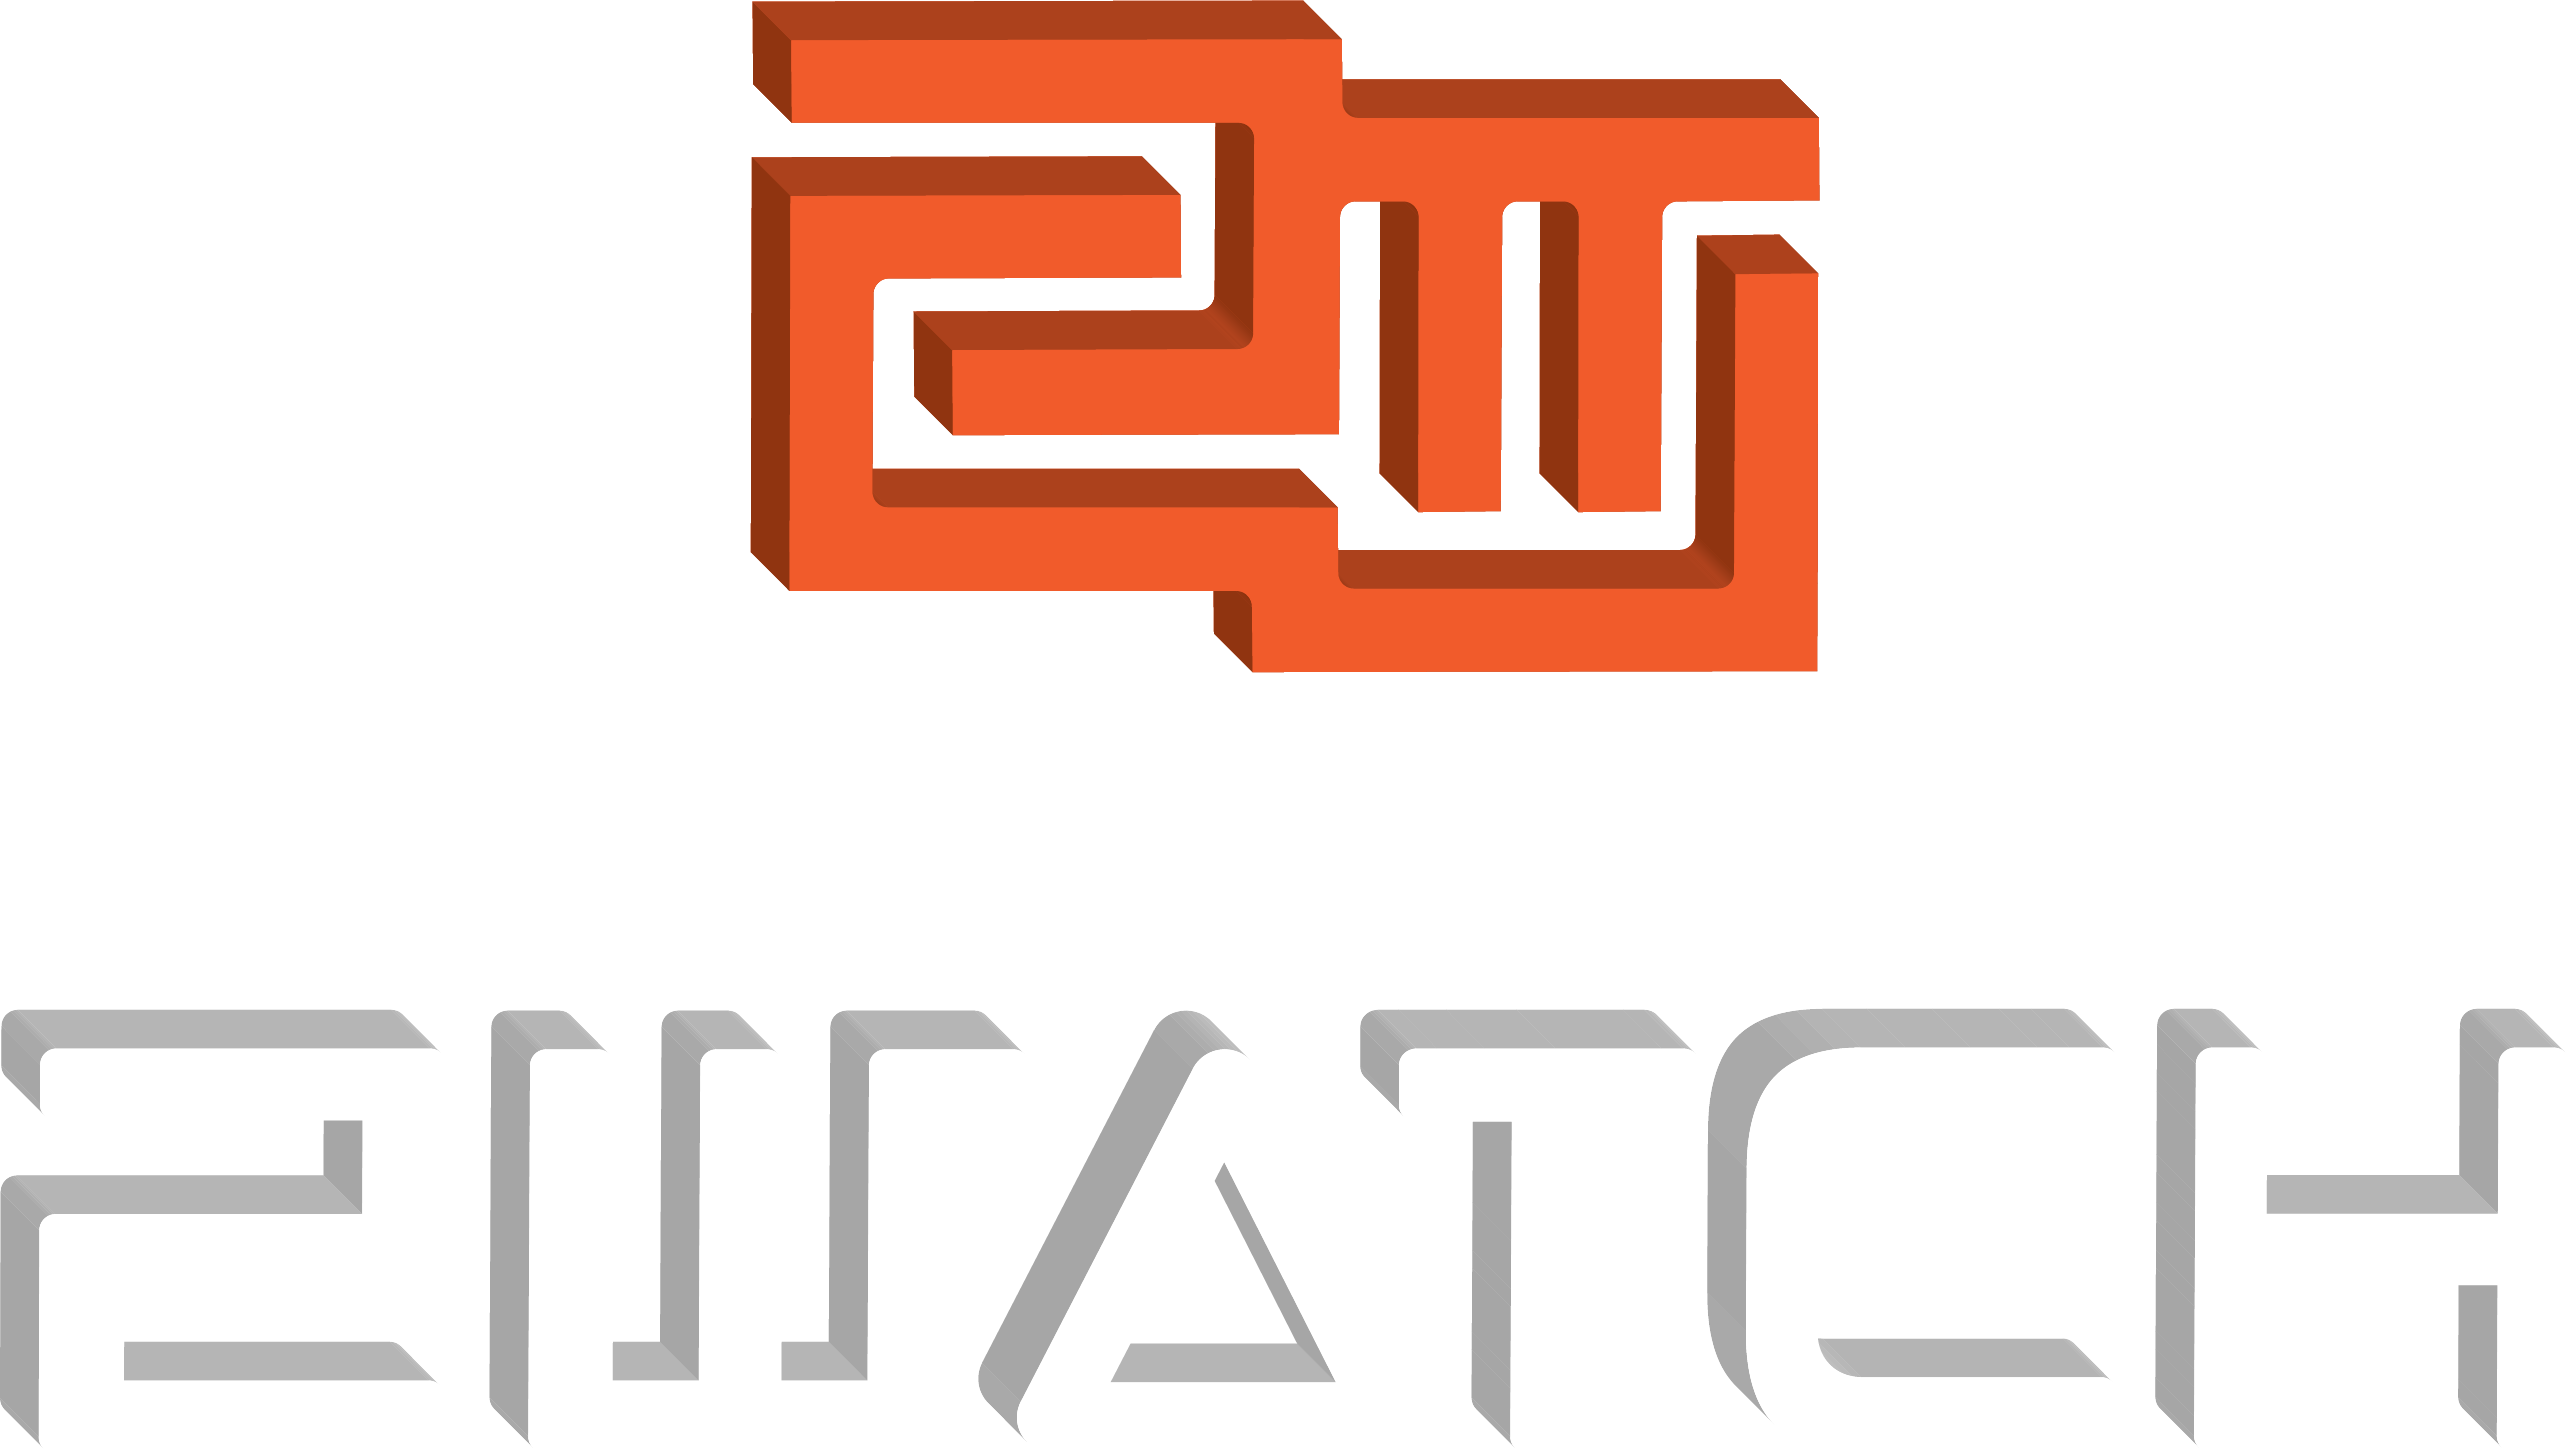 2WATCH Official